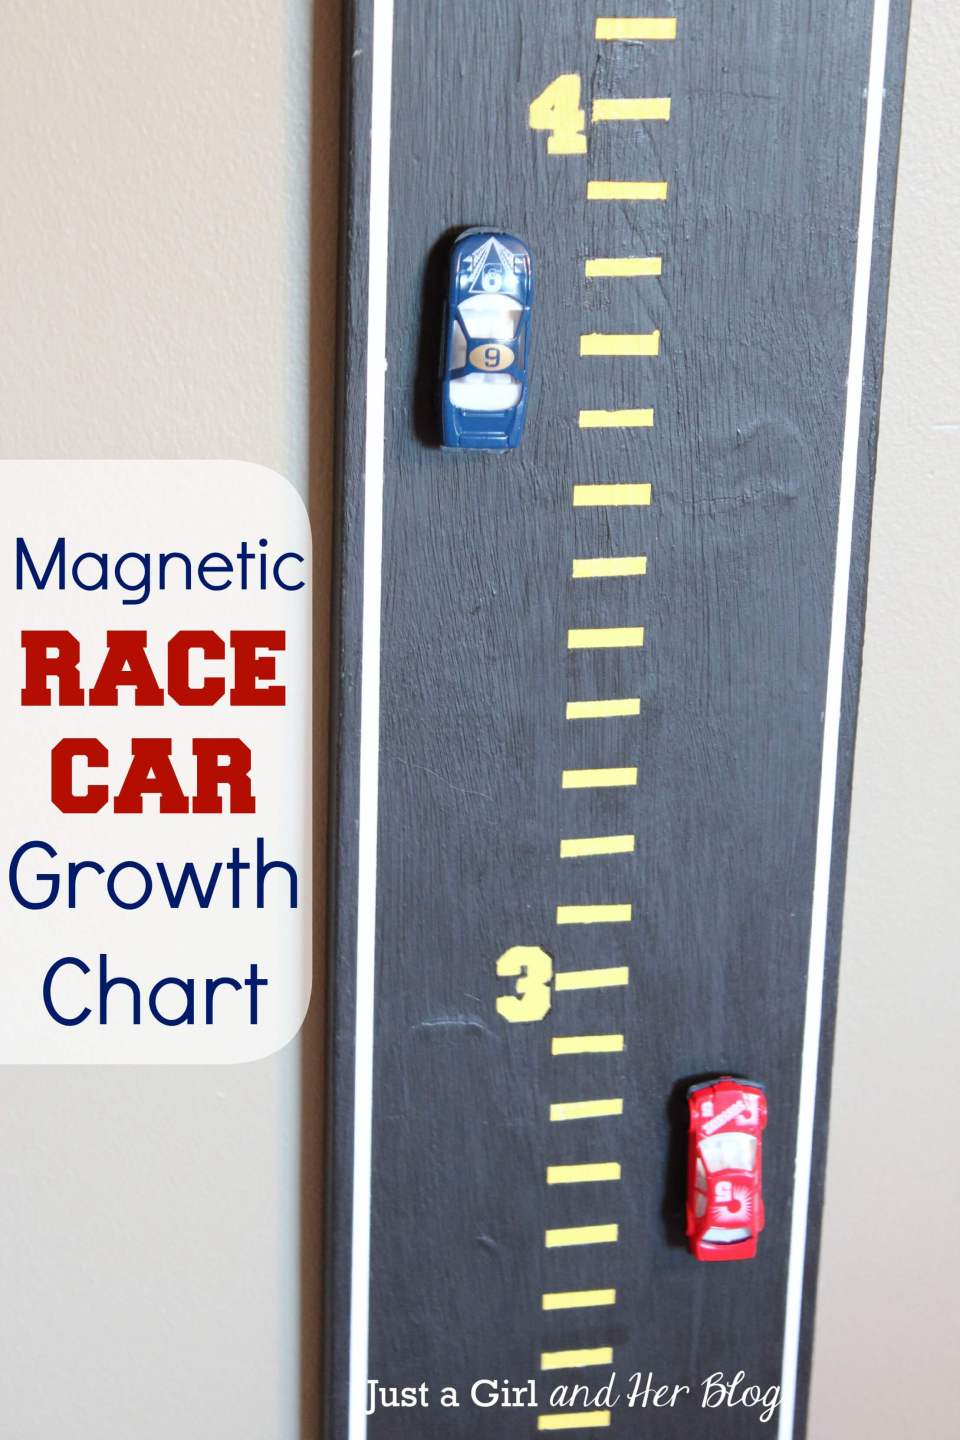 Magnetic race car growth chart | DIY Race Car Tracks for Kids - FarmFoodFamily